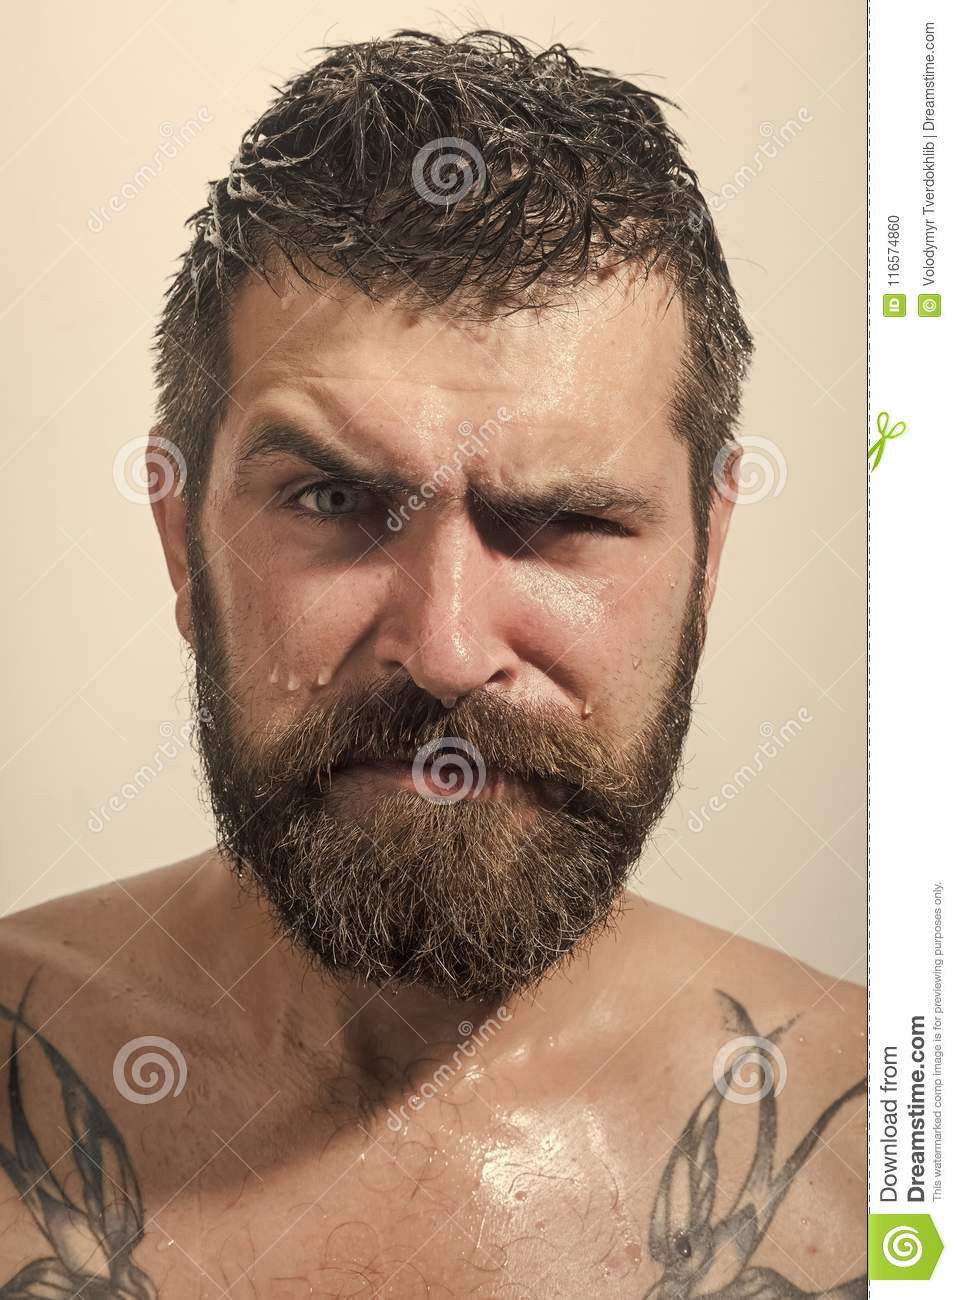 Serious face guy naked pic 773